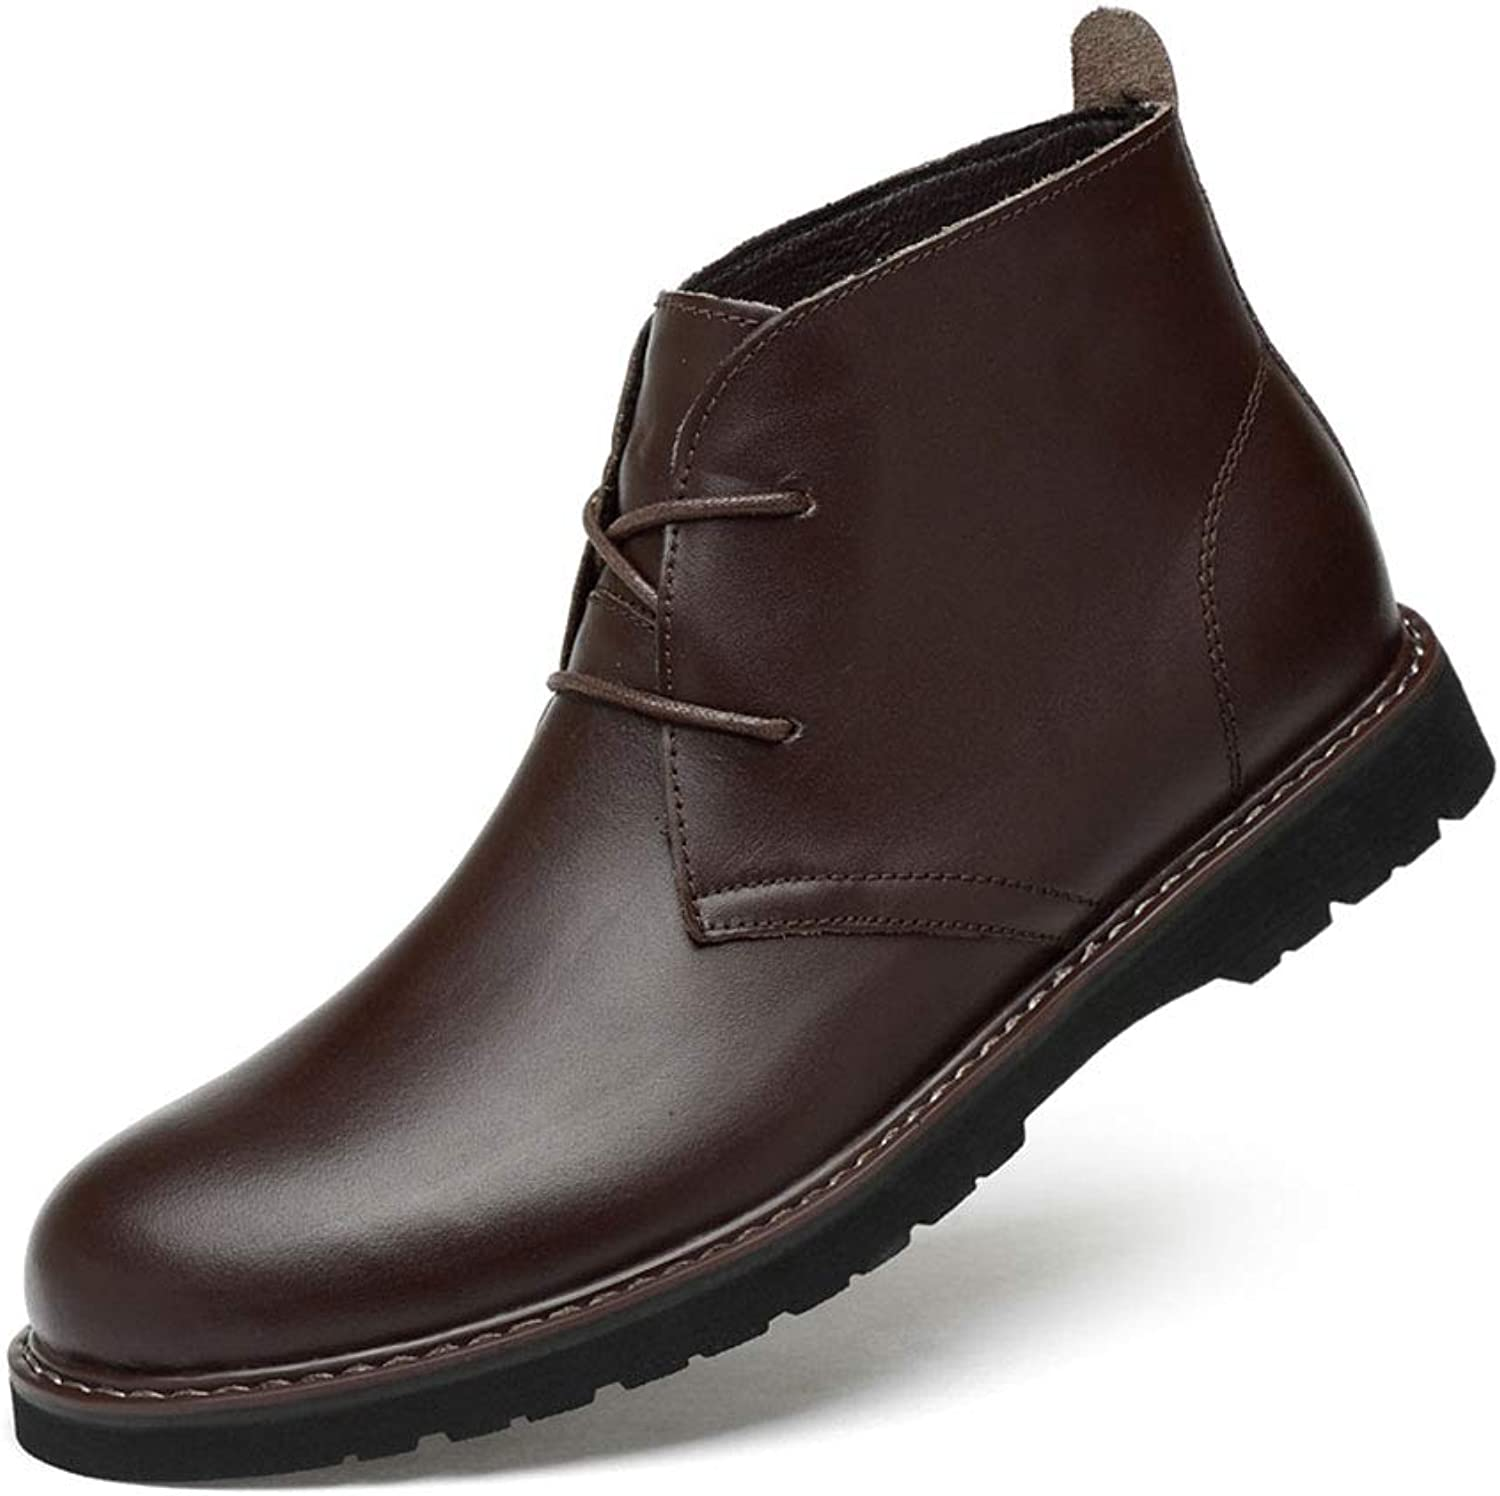 Tlgf Boots Men's Real Leather Boots With Leather Soles. In Black And Brown,Casual Leather shoes